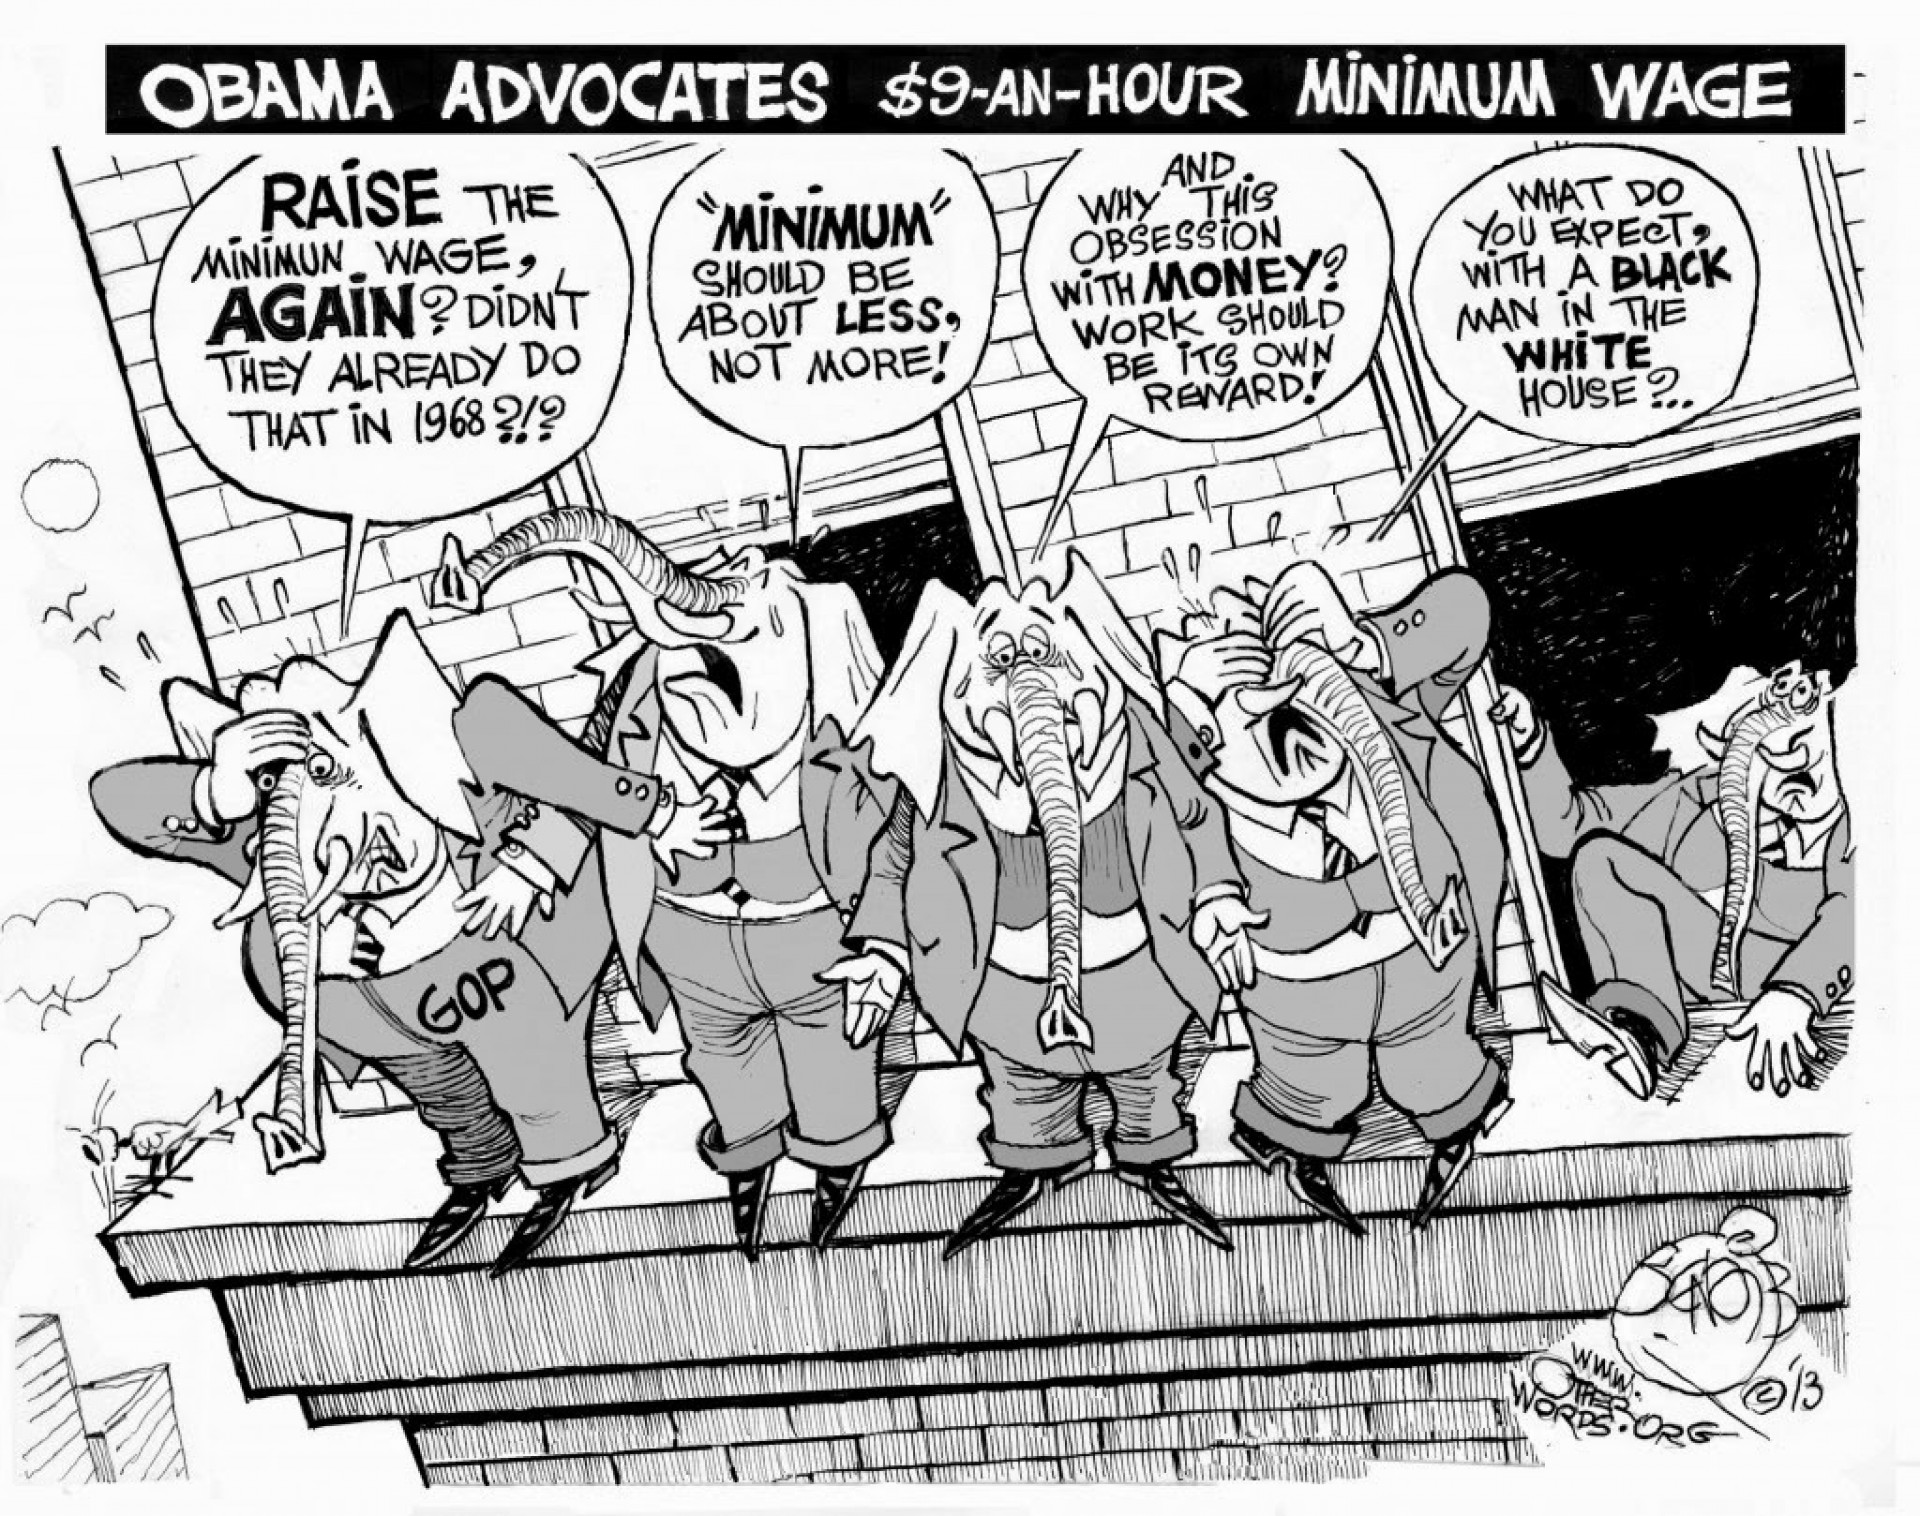 024 Minimum Wage Cartoon 1024x809 Why Should Raised Essay Unusual Be We Raise Not Increase 1920